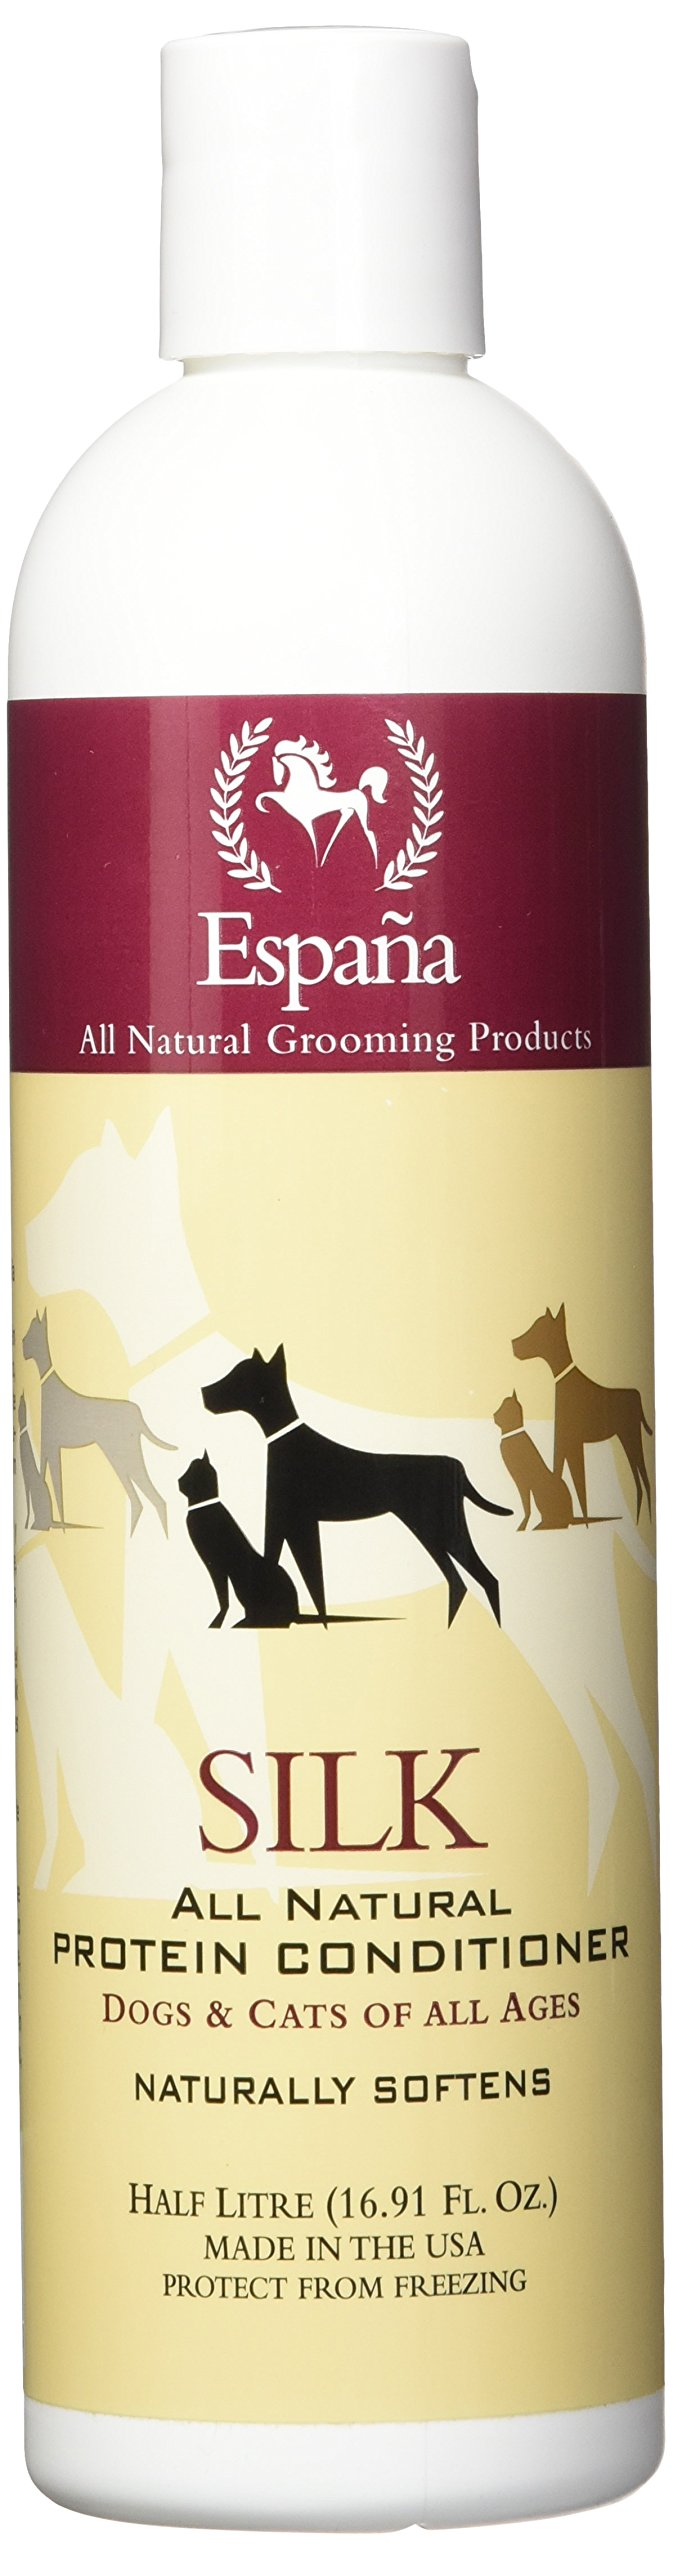 Espana Silk ESP1015DC Specially Formulated Silk Protein Conditioner for Dogs and Cats, 16.91-Ounce